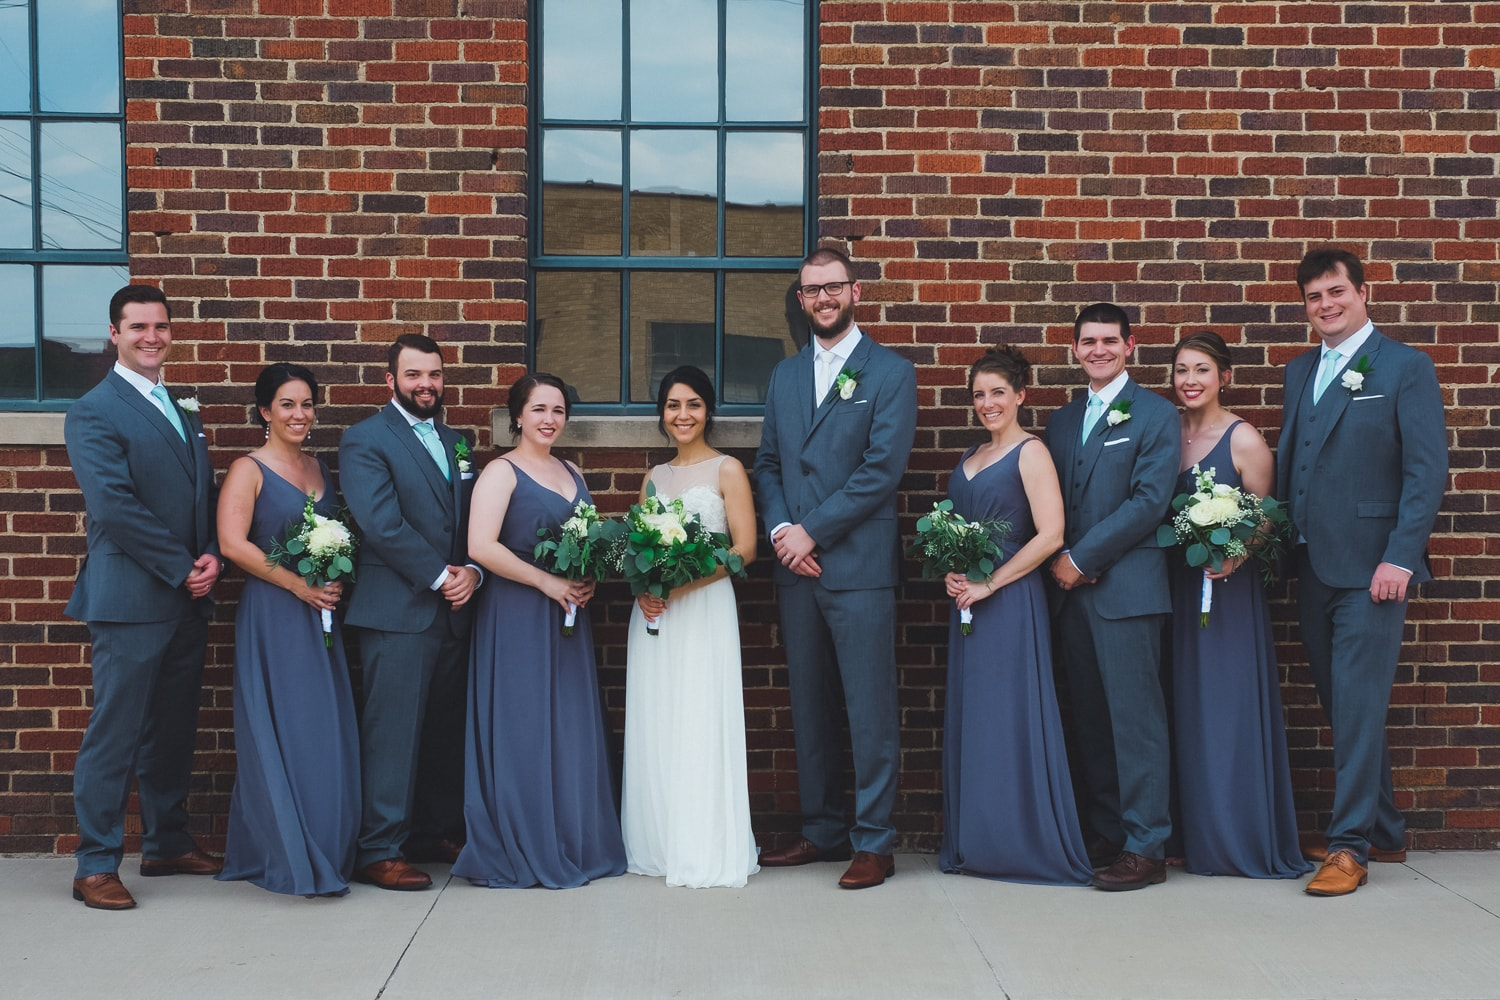 Isabel Orozco Moore and John Moore wedding party in Film Row in Oklahoma City // Photo by Leia Smethurst